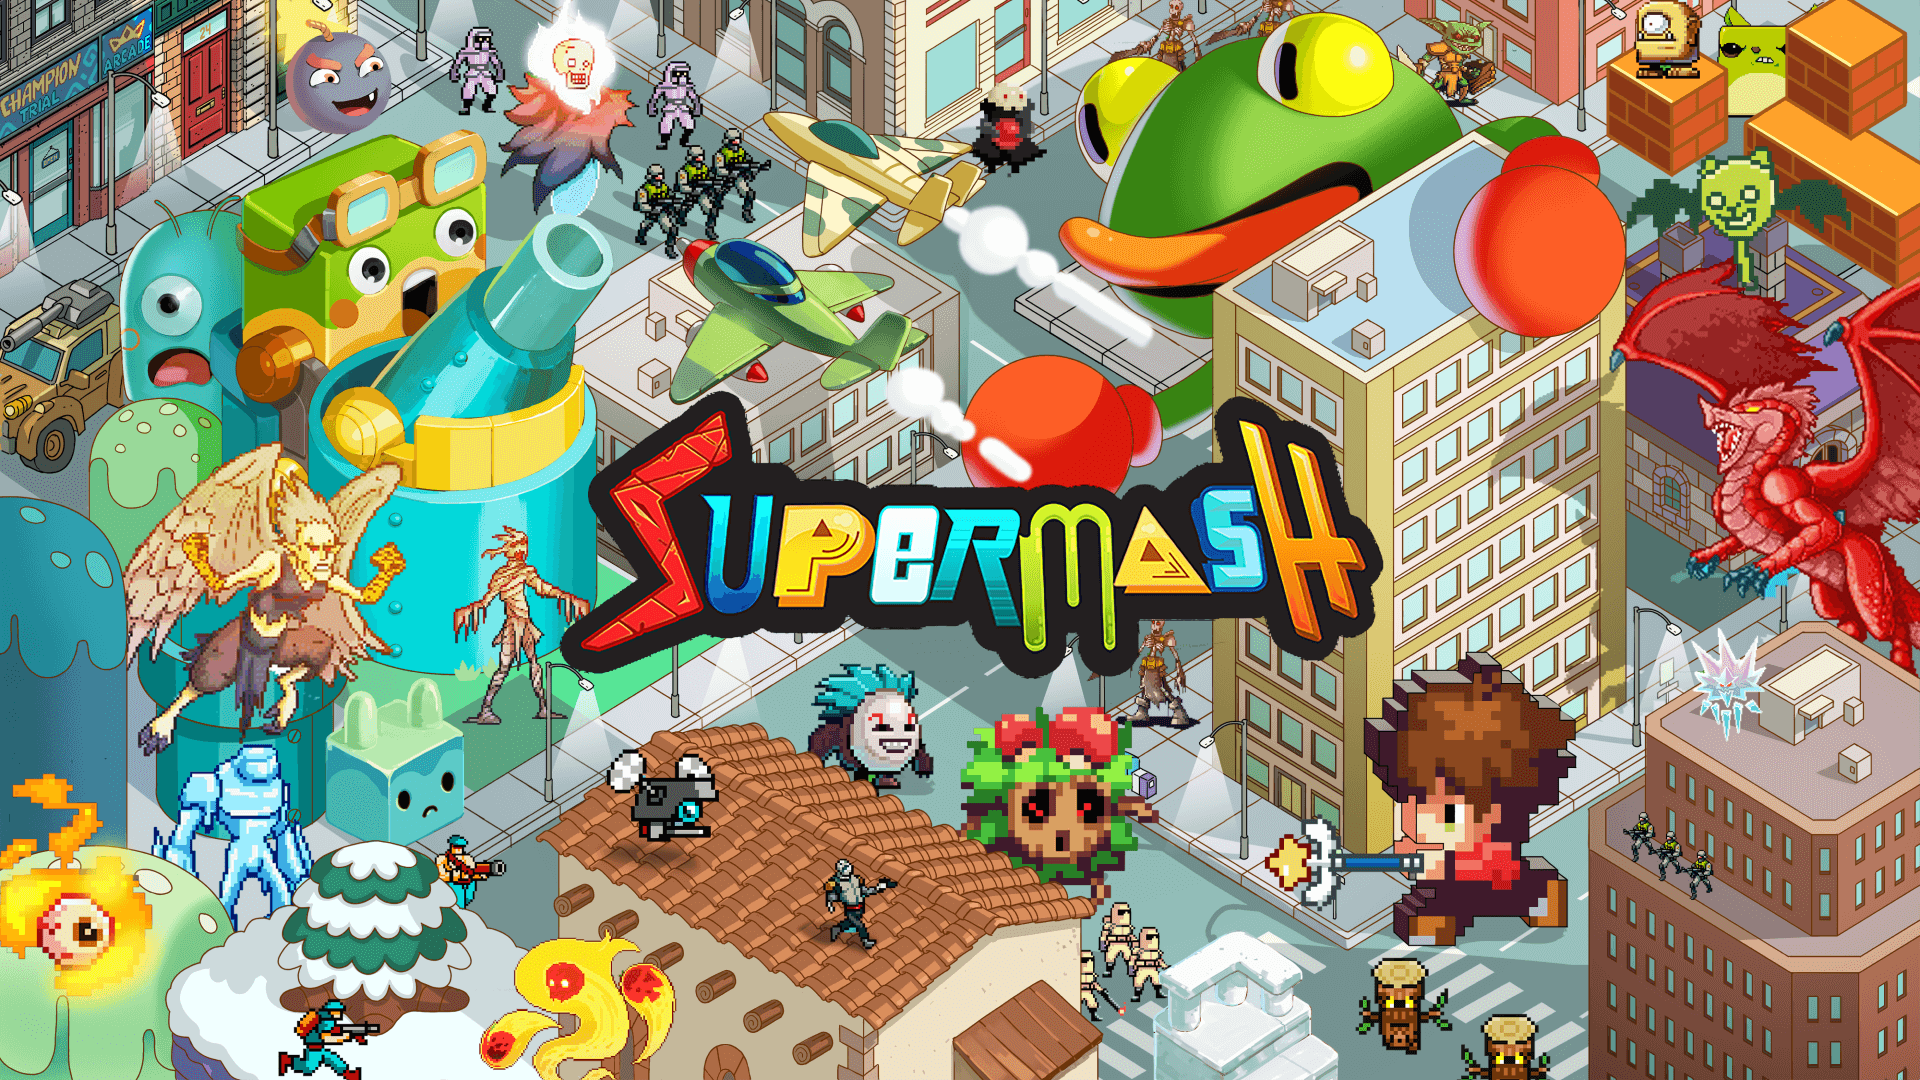 SuperMash is Coming to Steam on January 13th